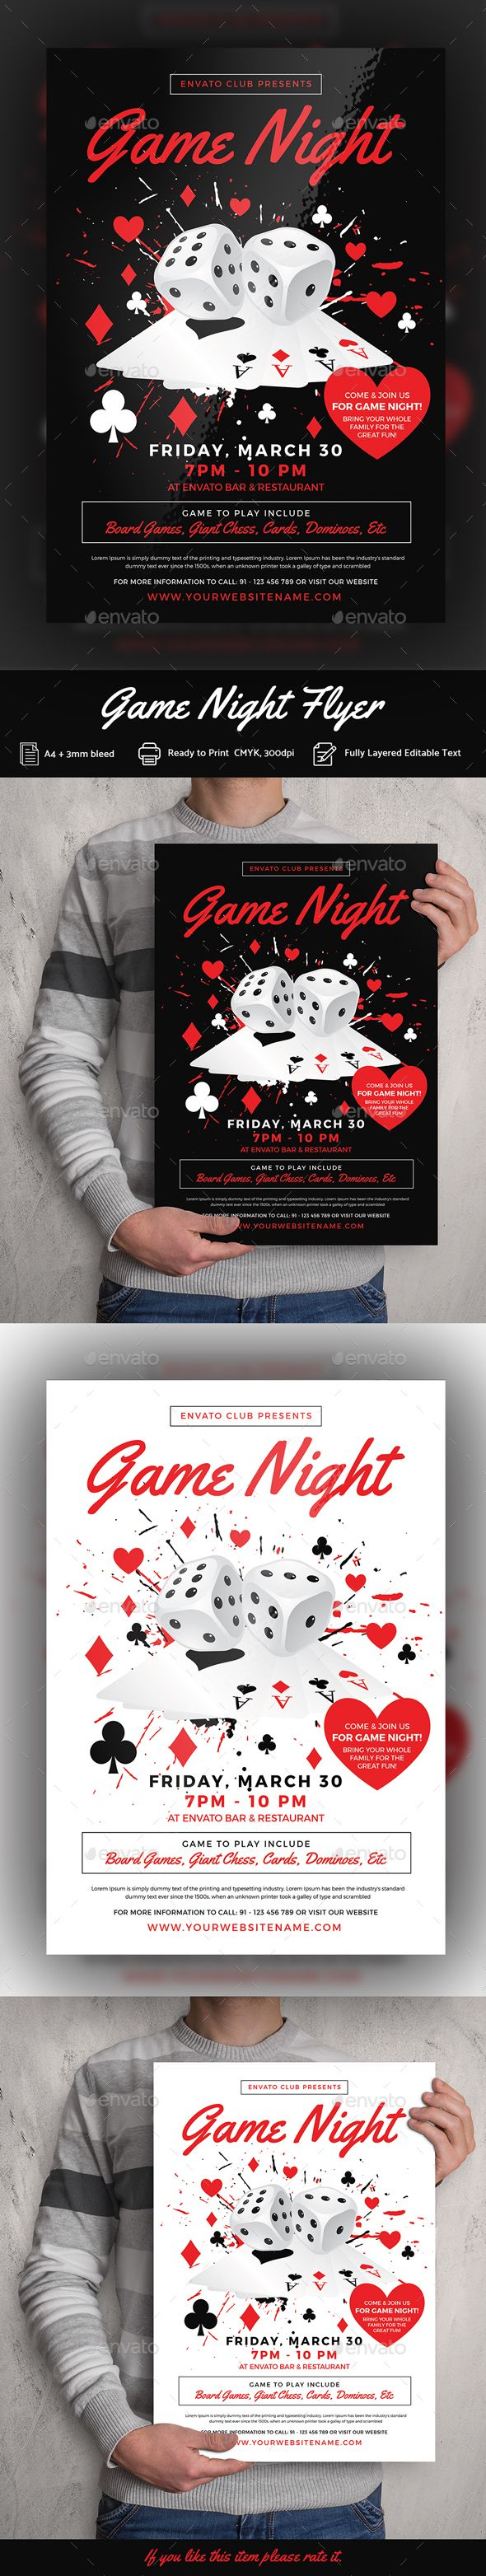 pin by maria alena on flyer pinterest flyer template game night